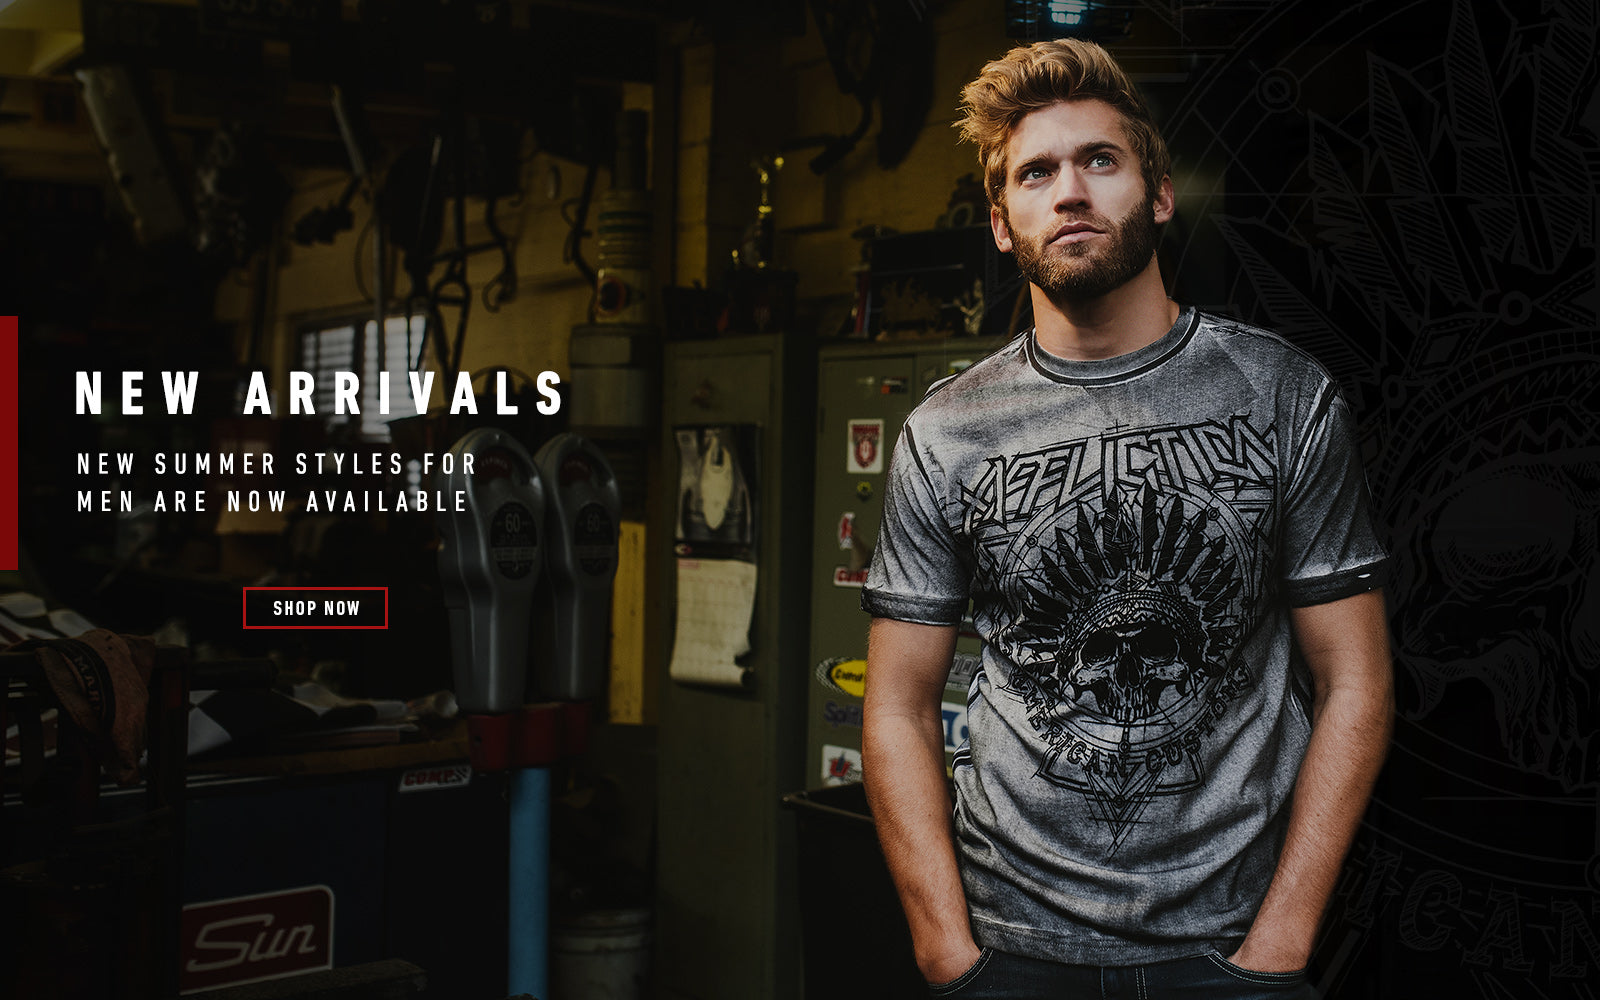 Affliction Alternative Clothing Unique Apparel Edgy Style